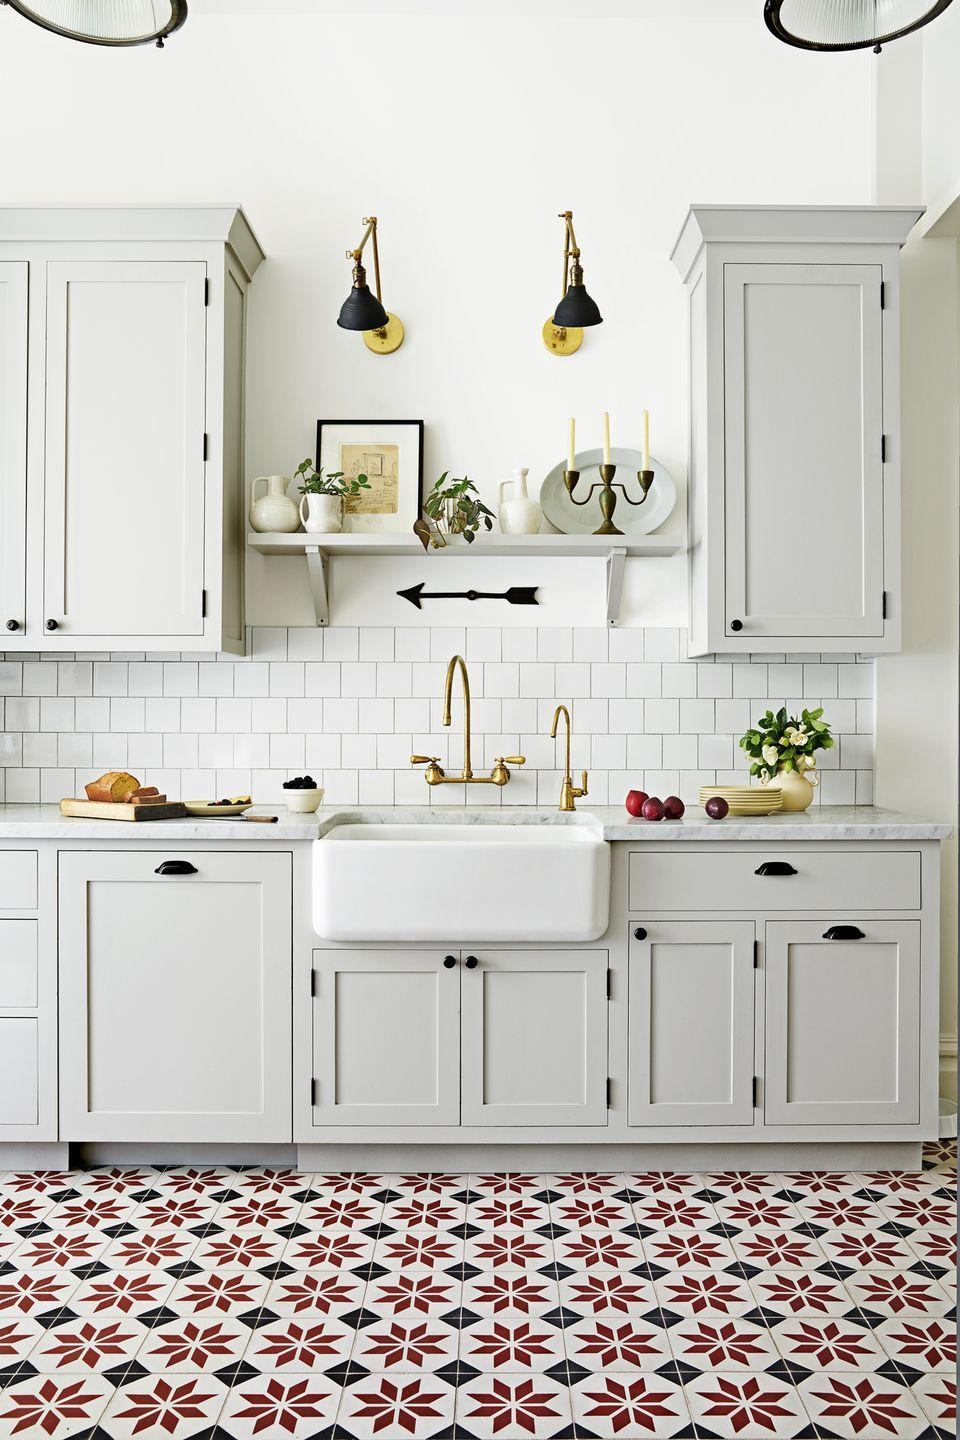 "<p>Rugs, however durable, aren't practical for a heavy-use kitchen. Enter statement floor tile. It's a more subtle way to add impact than, say, a bold eye-level backsplash.</p><p><strong>Bonus idea: </strong>Tired of the same old subway tile? This on-trend square shape has a charming shingle-like effect. </p><p><a class=""link rapid-noclick-resp"" href=""https://go.redirectingat.com?id=74968X1596630&url=https%3A%2F%2Fwww.homedepot.com%2Fp%2FMSI-Calypso-Blanco-Lotus-Pattern-12-in-x-12-in-x-10-mm-Marble-Mesh-Mounted-Mosaic-Tile-10-sq-ft-case-CALPBLA-MF10MM%2F206527637%3Fkeyword%3Dpattern%2Bfloor%2Btile%26semanticToken%3Dd0110003011_20200122122034896891_9s75%2Bd0110003011%2B%253E%2B%2Bcnn%253A%257B12%253A1%257D%2Bcnr%253A%257B7%253A0%257D%2Bcnd%253A%257B4%253A0%257D%2Bcne%253A%257B8%253A0%257D%2Bcnb%253A%257B9%253A1%257D%2Bcns%253A%257B5%253A0%257D%2Bcnx%253A%257B3%253A0%257D%2Bst%253A%257Bpattern%2Bfloor%2Btile%257D%253Ast%2Boos%253A%257B0%253A1%257D%2Bpt%253A%257Bfloor%2Btile%257D%253Apt%2Bdln%253A%257B570831%257D%2Bqu%253A%257Bpattern%2Bfloor%2Btile%257D%253Aqu&sref=https%3A%2F%2Fwww.countryliving.com%2Fhome-design%2Fdecorating-ideas%2Fg3988%2Fkitchen-trends%2F"" rel=""nofollow noopener"" target=""_blank"" data-ylk=""slk:SHOP PATTERNED TILE"">SHOP PATTERNED TILE</a></p>"